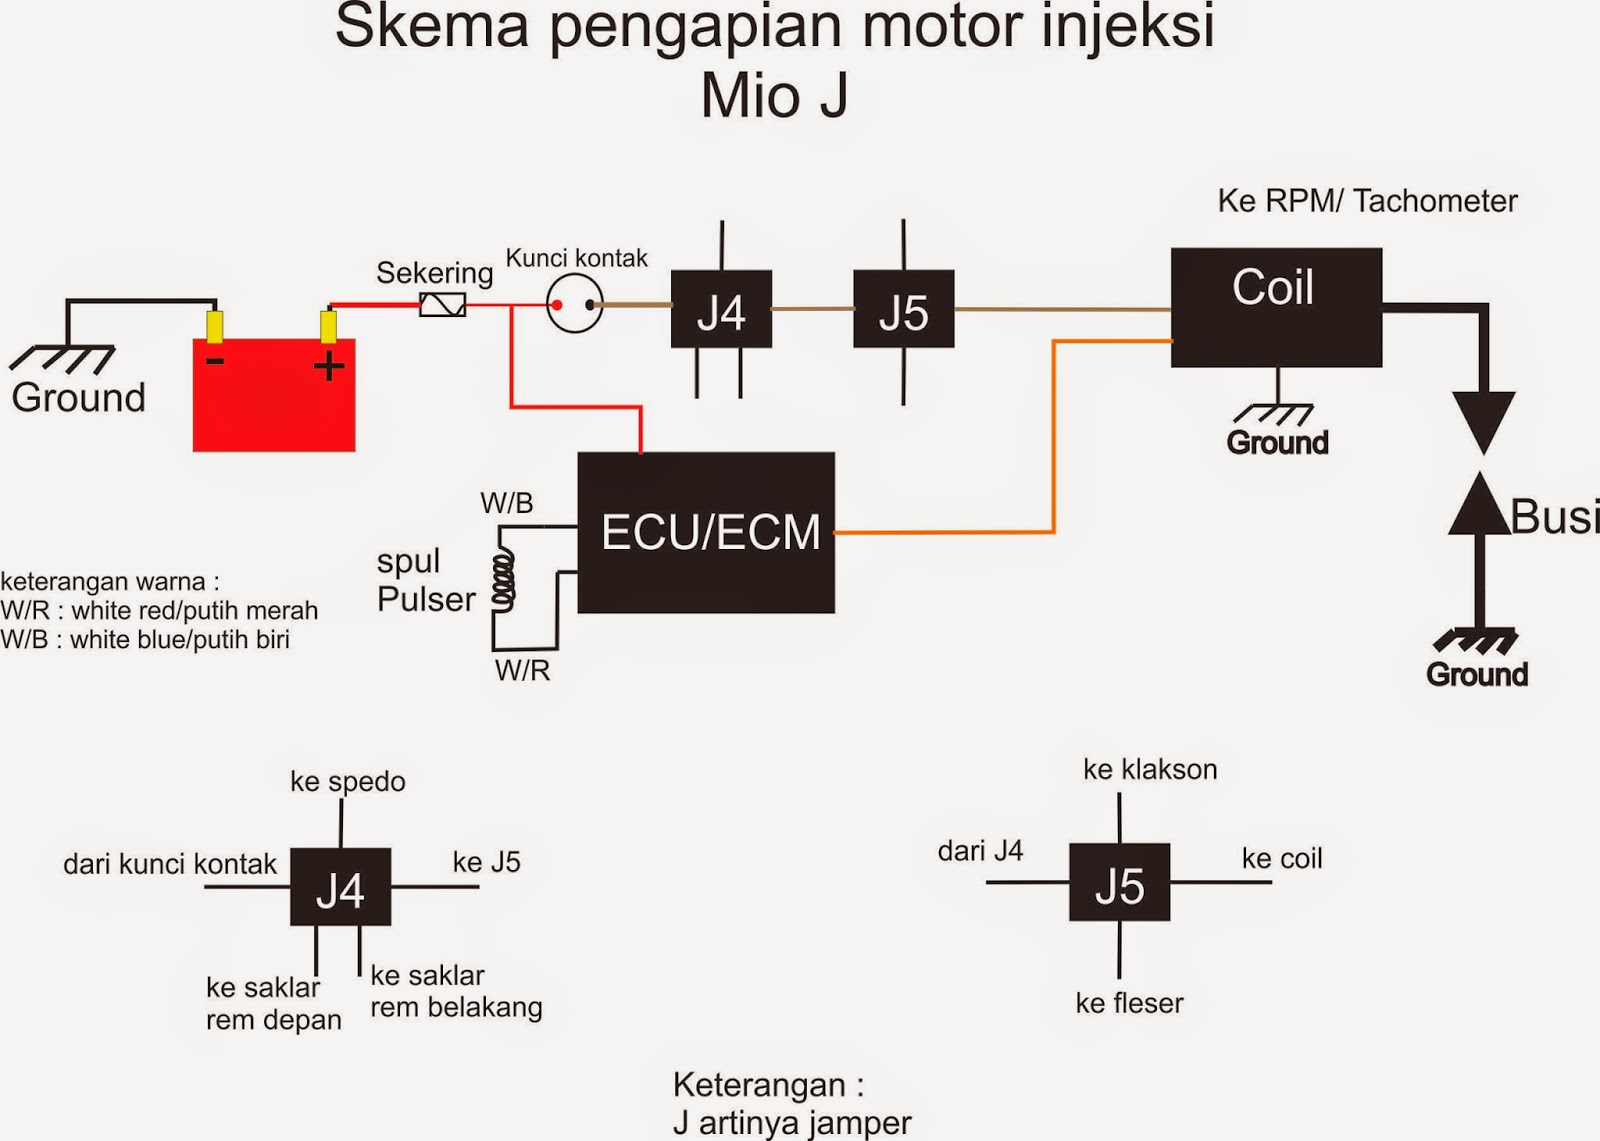 Wiring diagram motor injeksi wire center sistem pengapian motor injeksi rh auto champion blogspot com single phase motor wiring diagrams single phase cheapraybanclubmaster